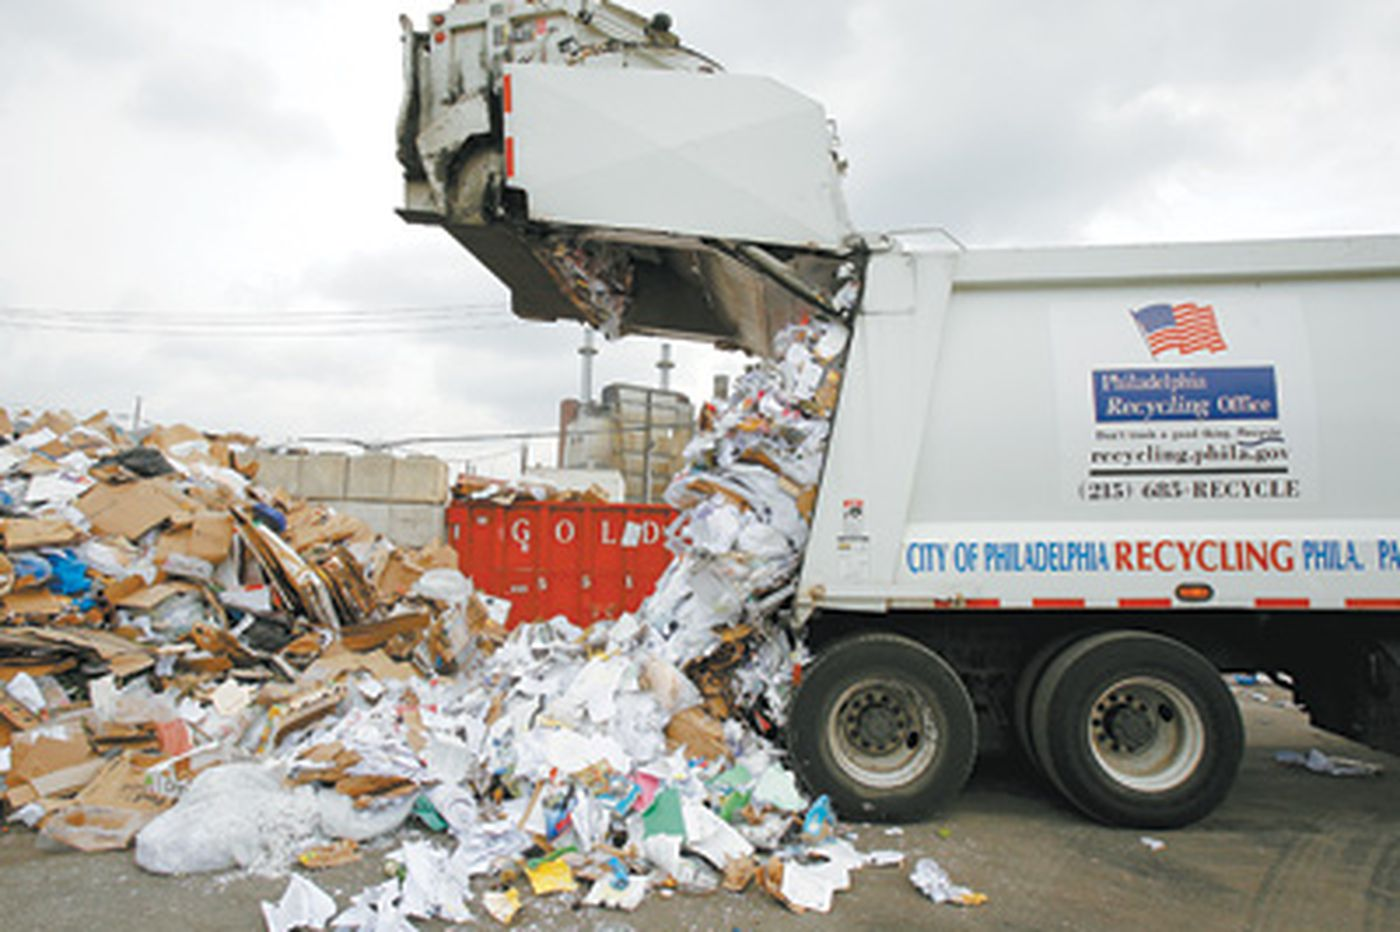 With recycling up 46%, there's talk of rewards